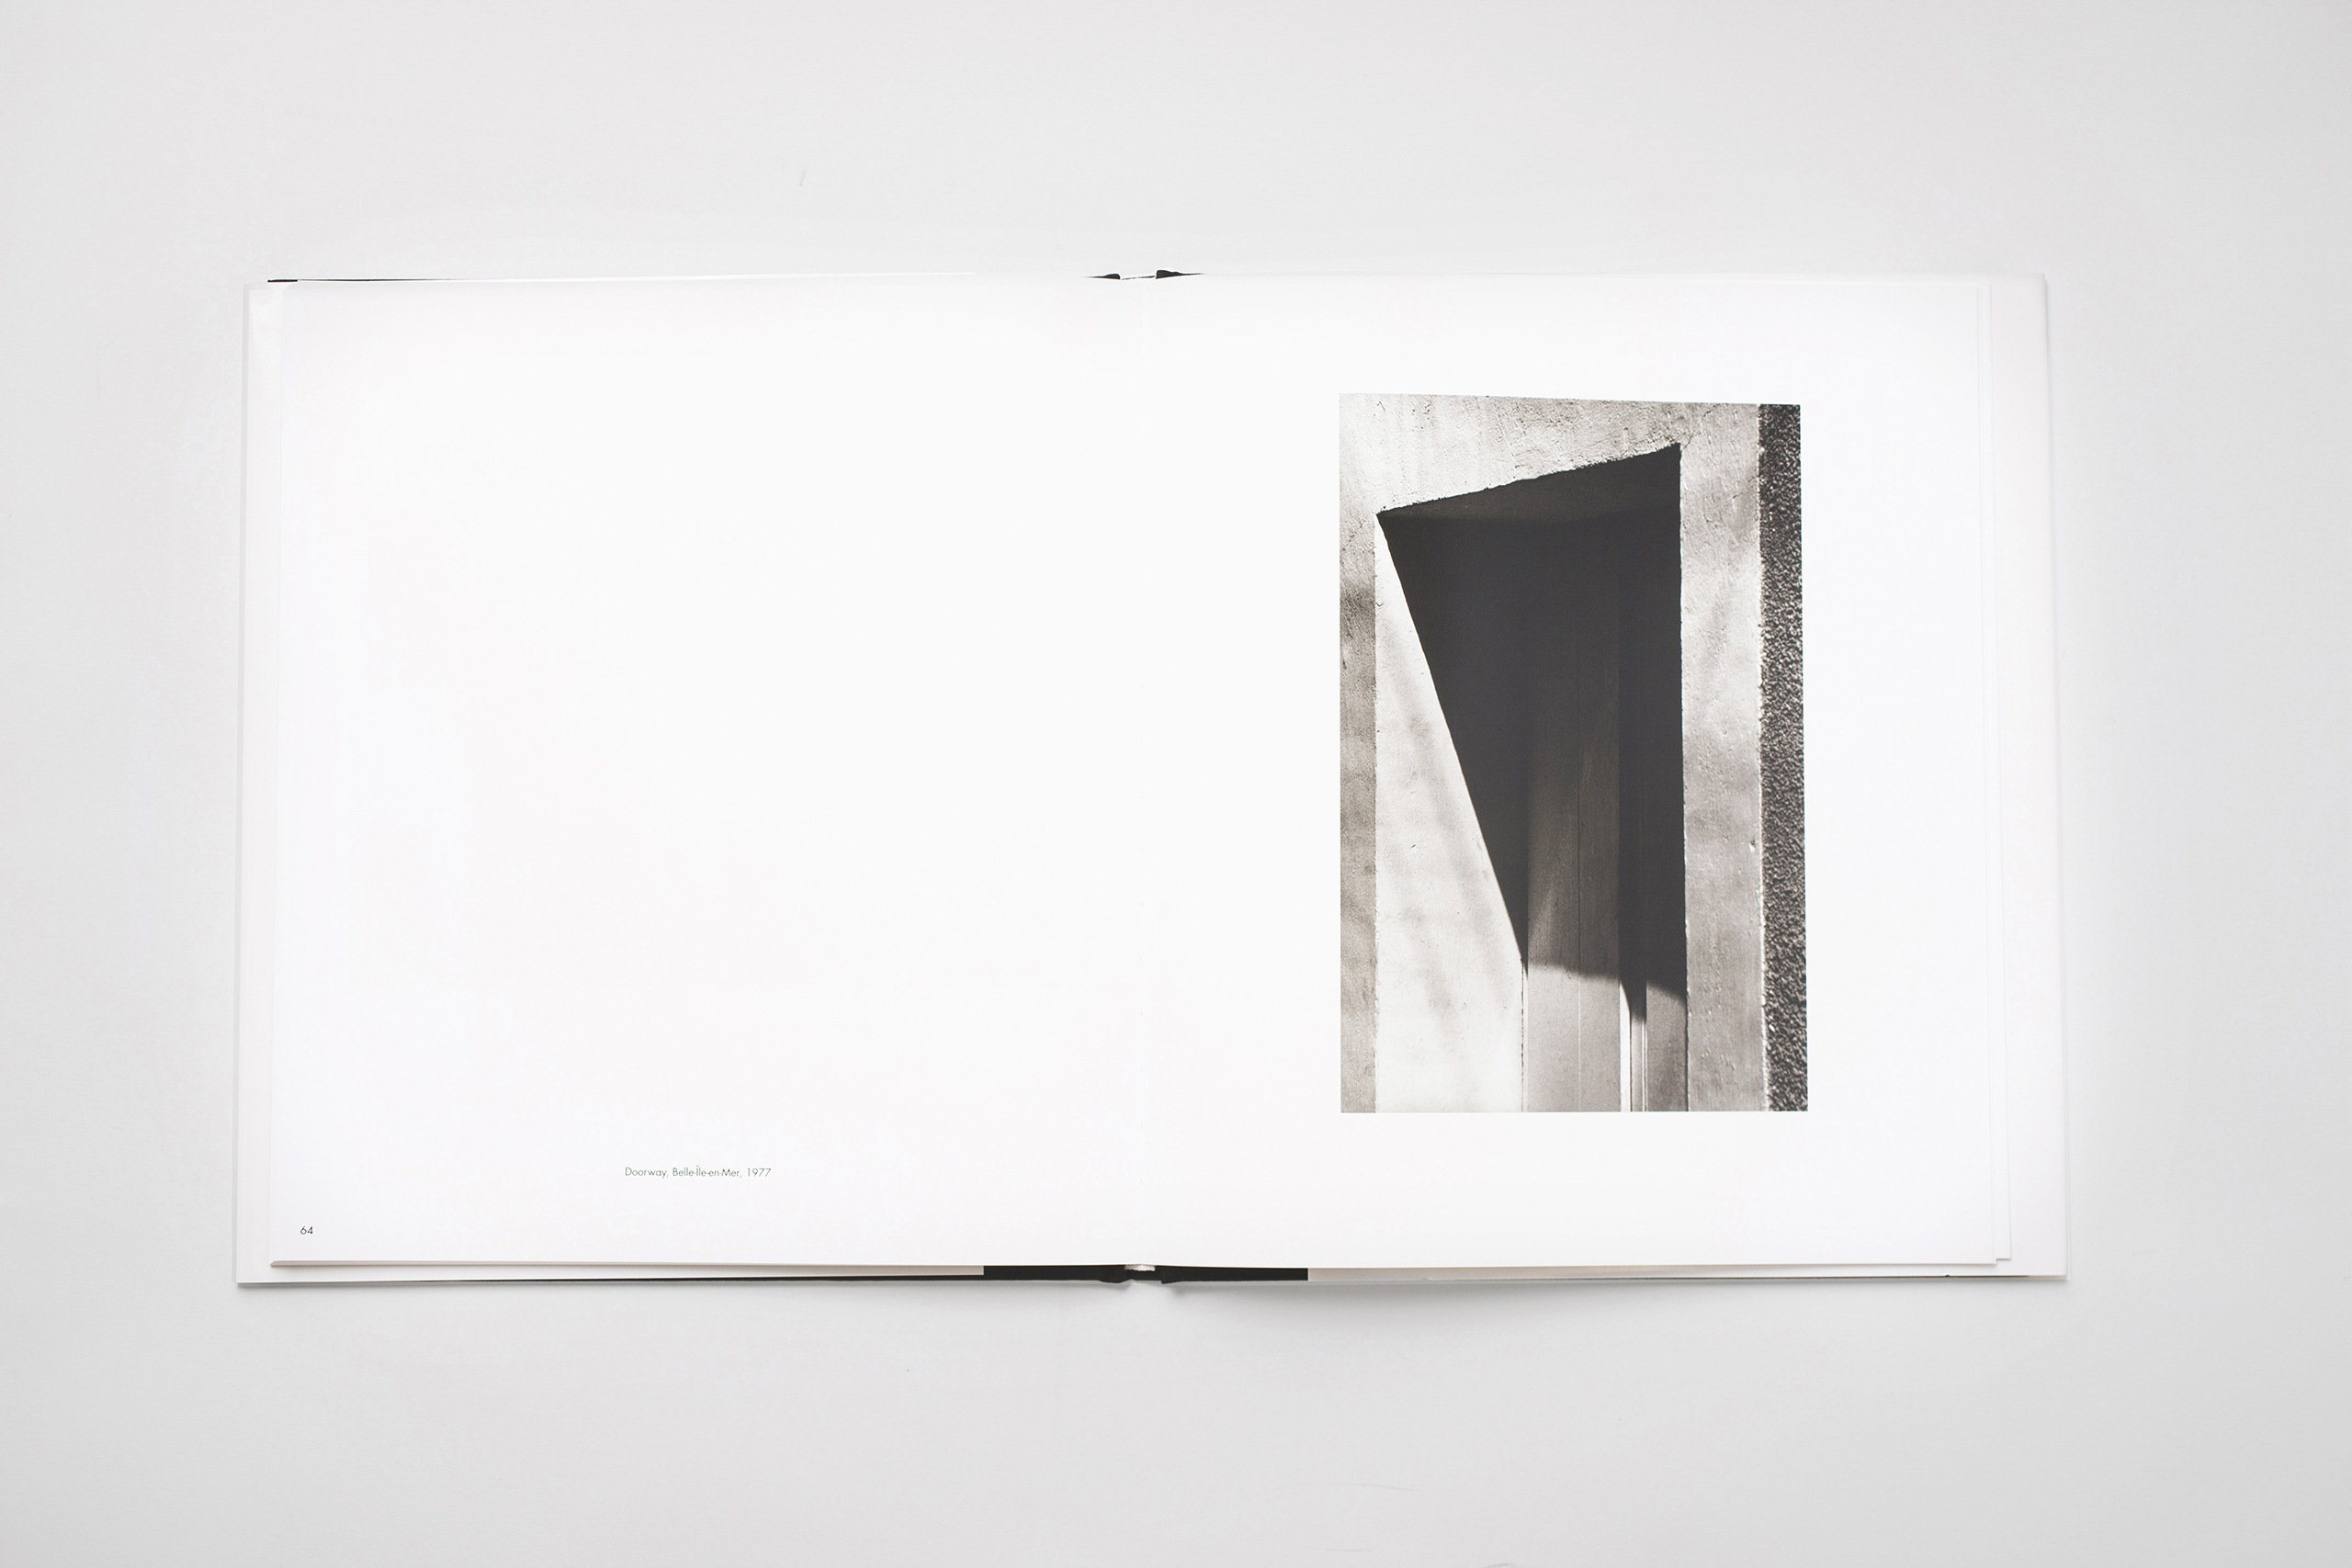 "Selected by writer and curator Vince Aletti:  In his introduction, Kelly writes that he started taking photographs in France in 1950, using the camera to ""make notations of things I had seen and subjects I had been drawing,"" which included branches, buildings, walls, doors, and windows. The earliest pictures in his book, which he compiled just before his death last December, look like drawings, but even as the work becomes more photographic, it remains flat, clean, and matter of fact in a style that recalls Edward Weston, Walker Evans, and the New Topographics crew. ""My photographs are simply records of my vision, how I see things,"" Kelly writes. ""My ideas develop from seeing, not from photographs."" Point taken, but seeing through Kelly's eyes can be revelatory. That diagonal shadow, that long flat roof, that newly repaired sidewalk square–all these found geometries suddenly look like Ellsworth Kellys."""